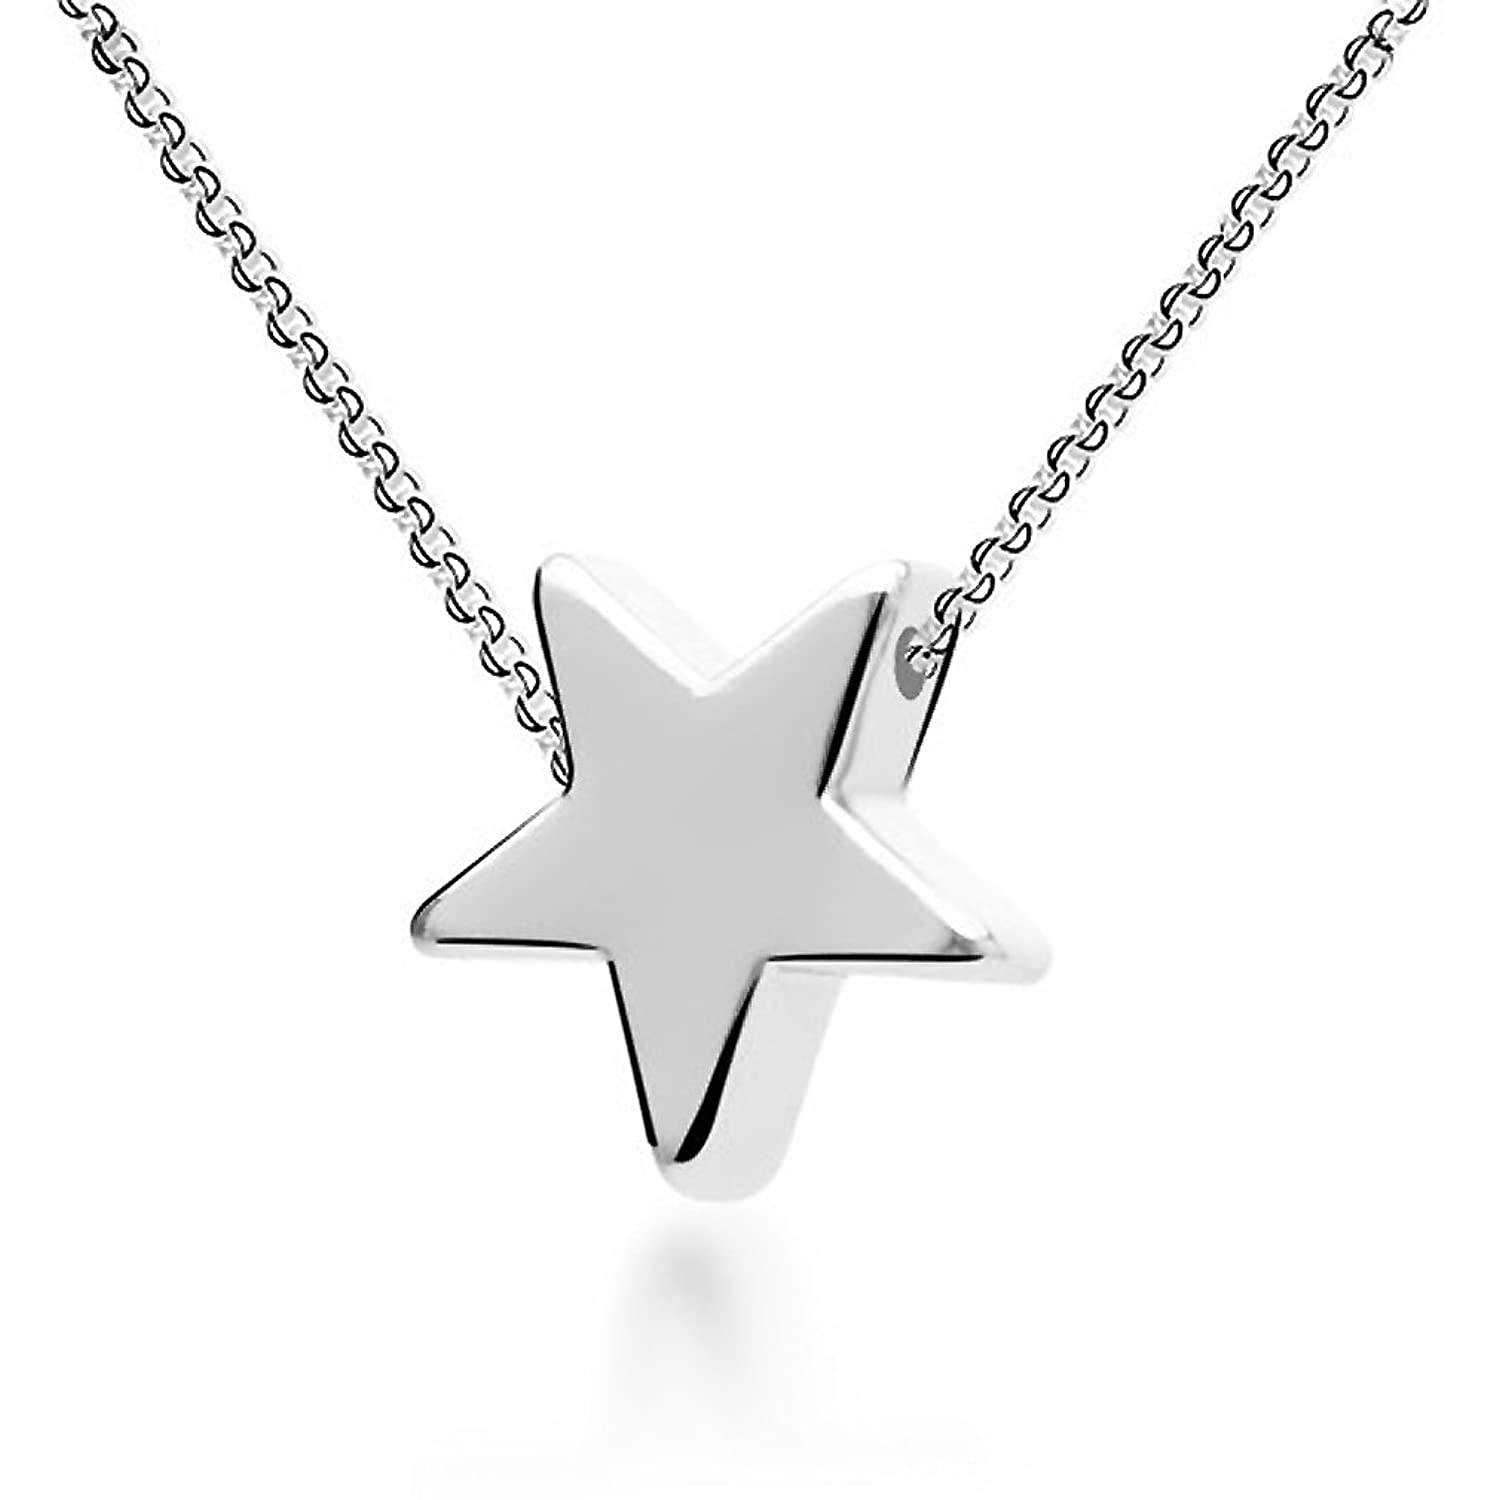 silve jewelry shape present necklaces gifts for dp pendant women color necklace plated silver ixiqi star